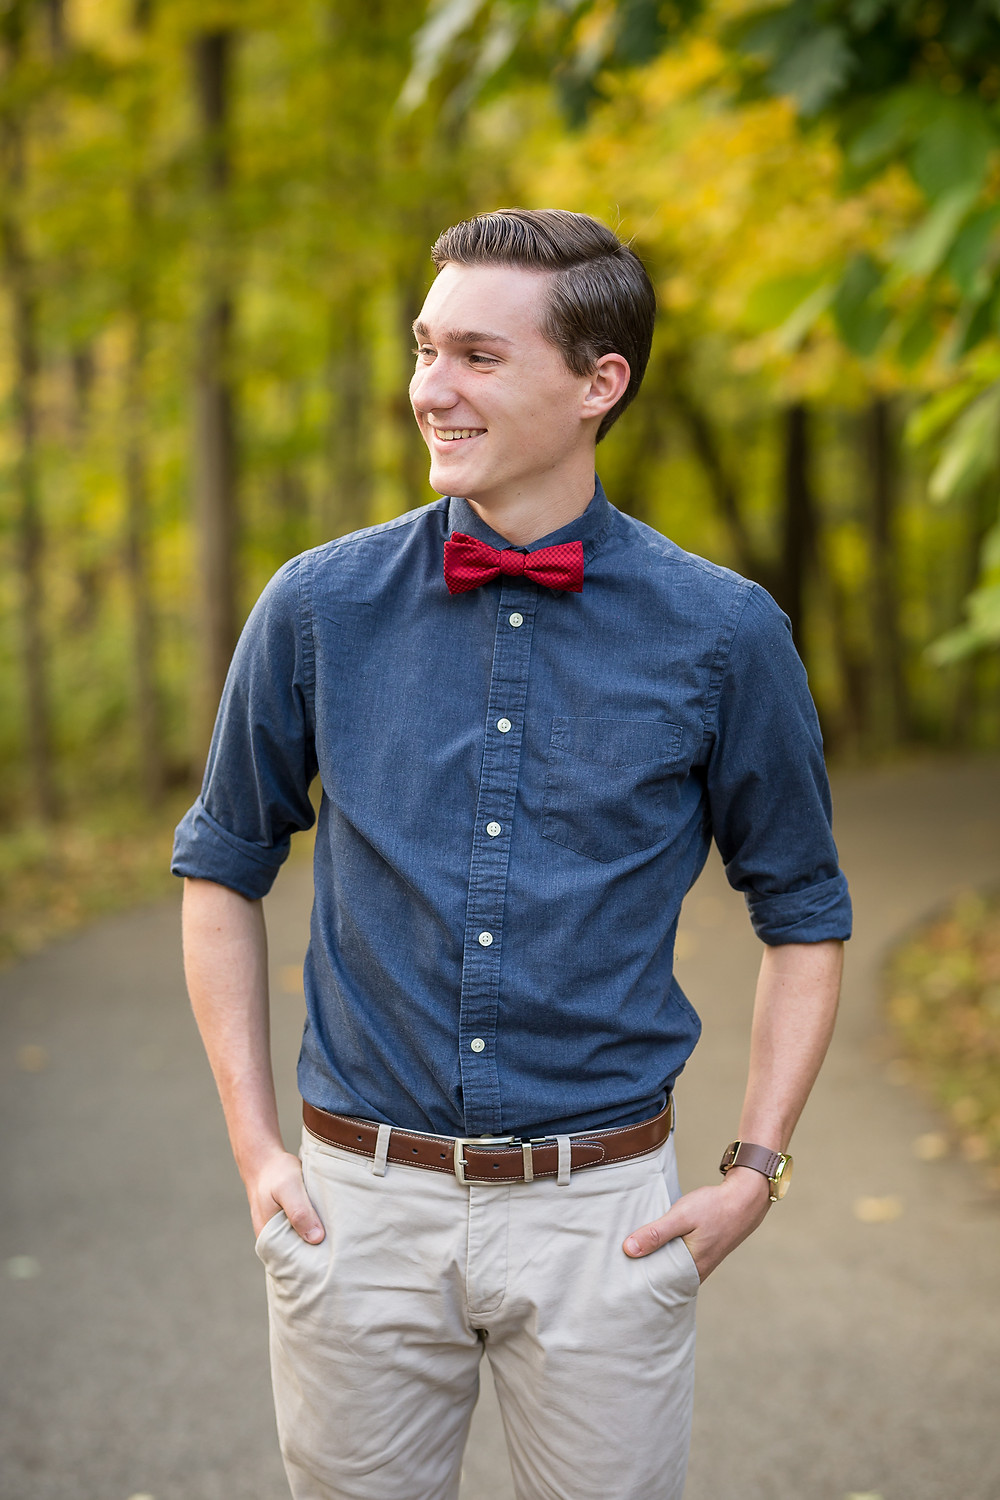 high school senior guy wearing blue shirt and red bowtie in Westerville senior photo yellow trees with Fall color October